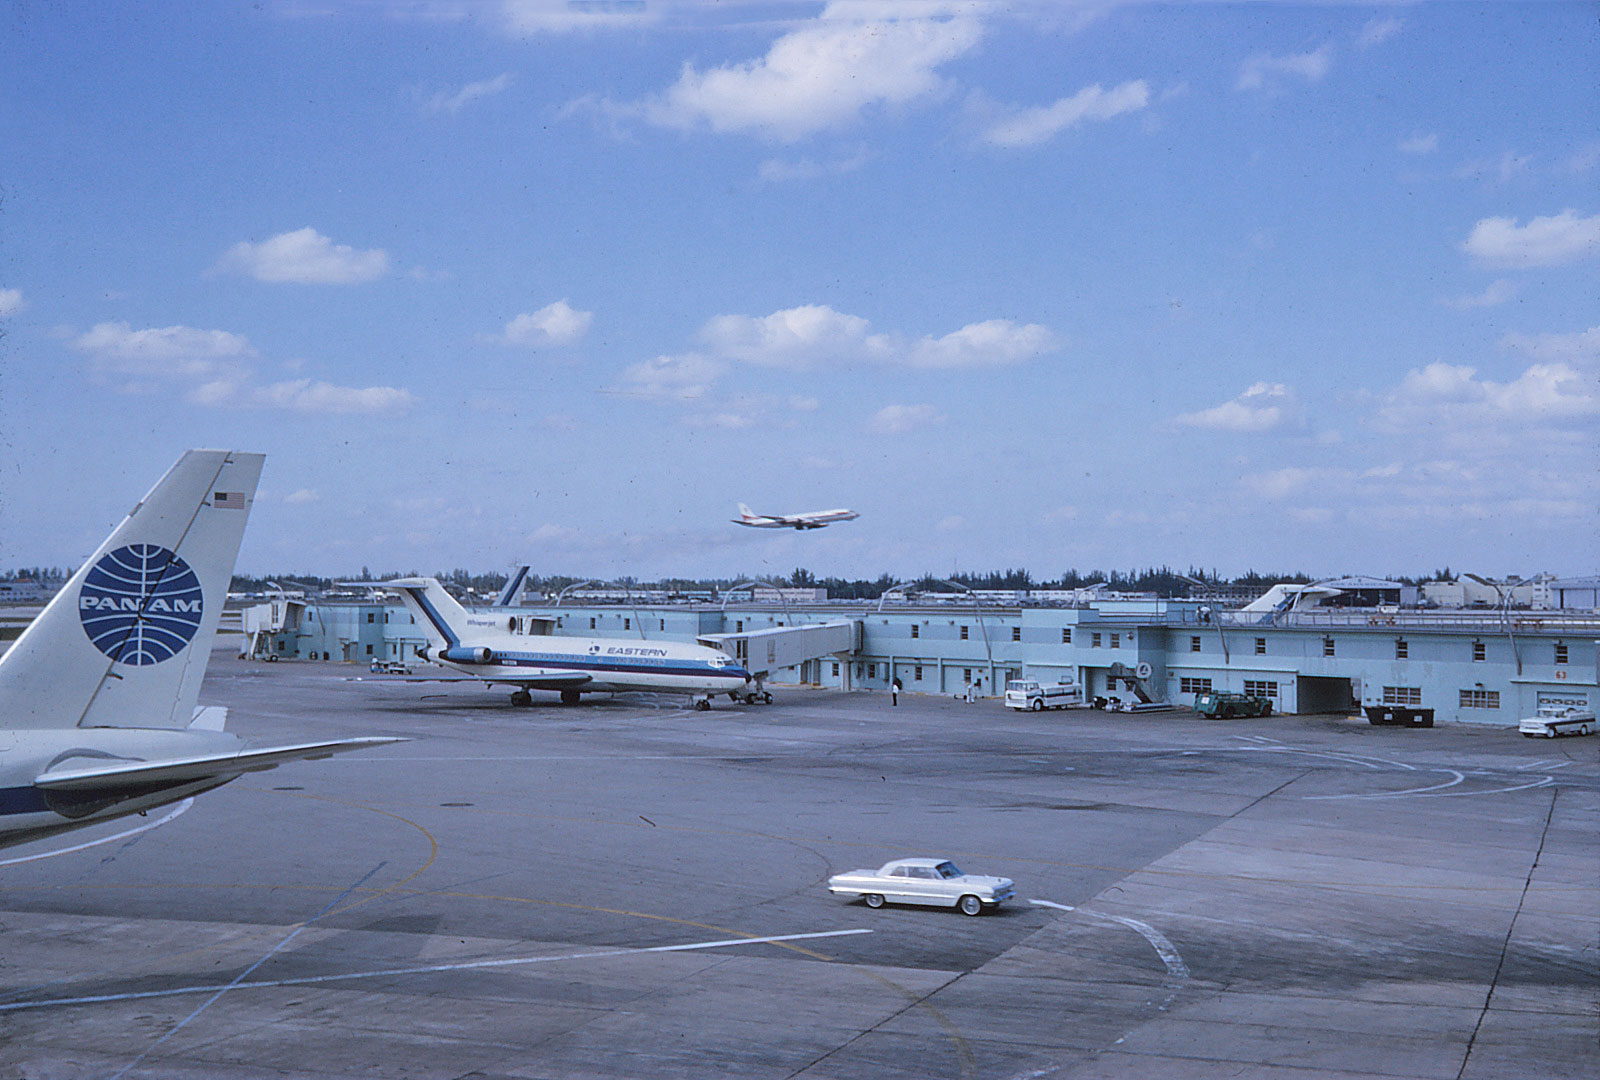 American Dream Circa 1960 >> Miami Airport Observation Decks expansion early 1960s ...